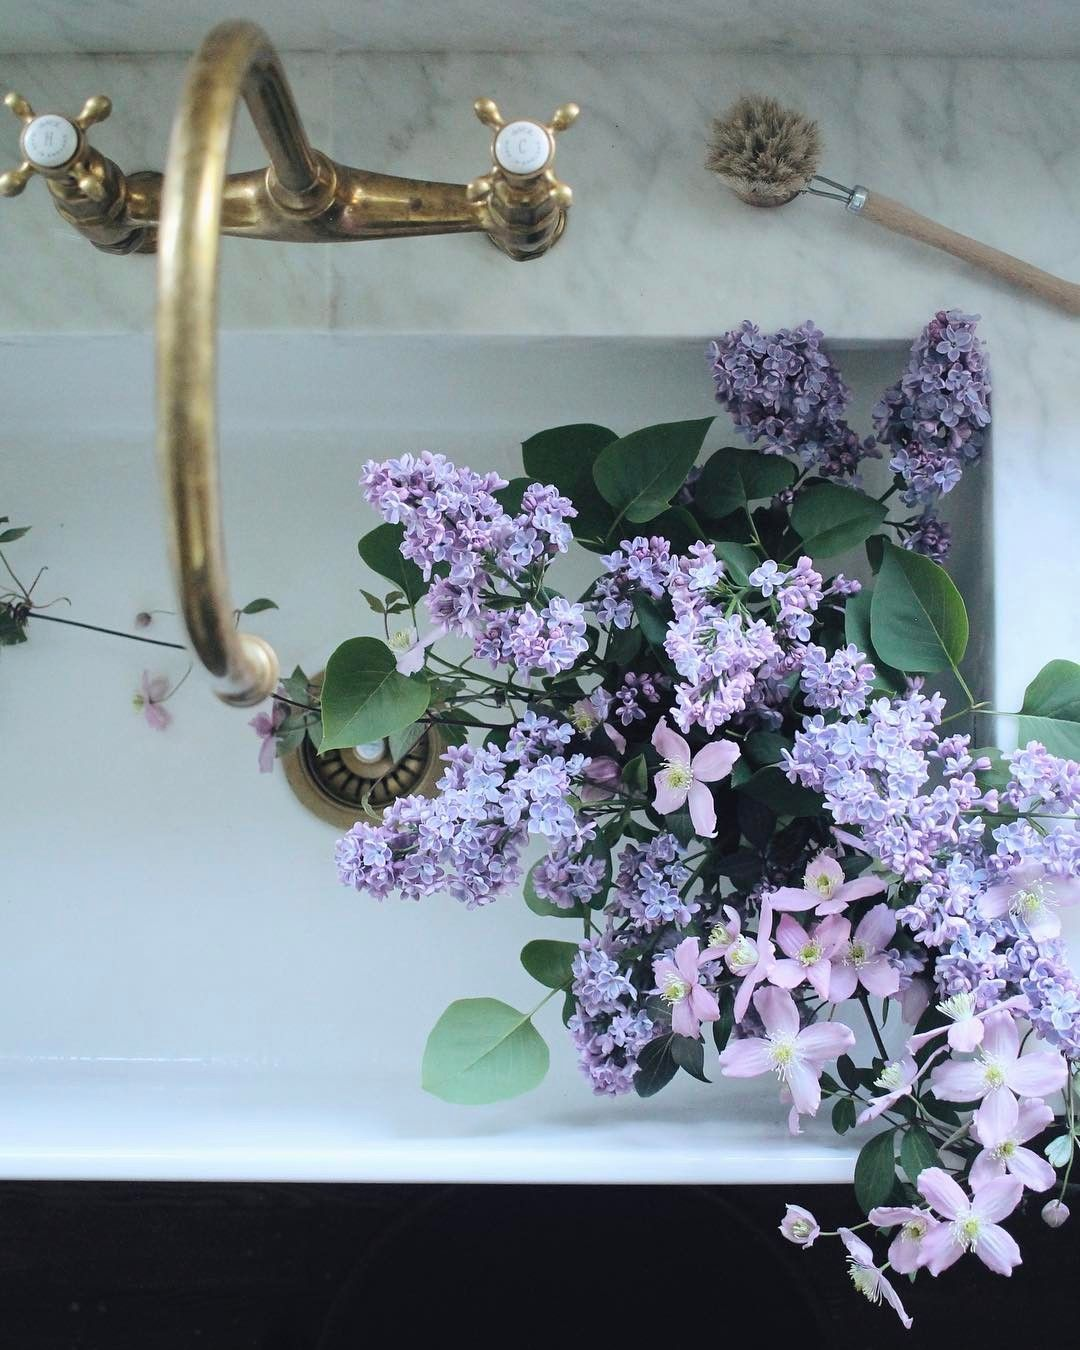 Lilacs and clematis from the garden. It feels so good to be home ...